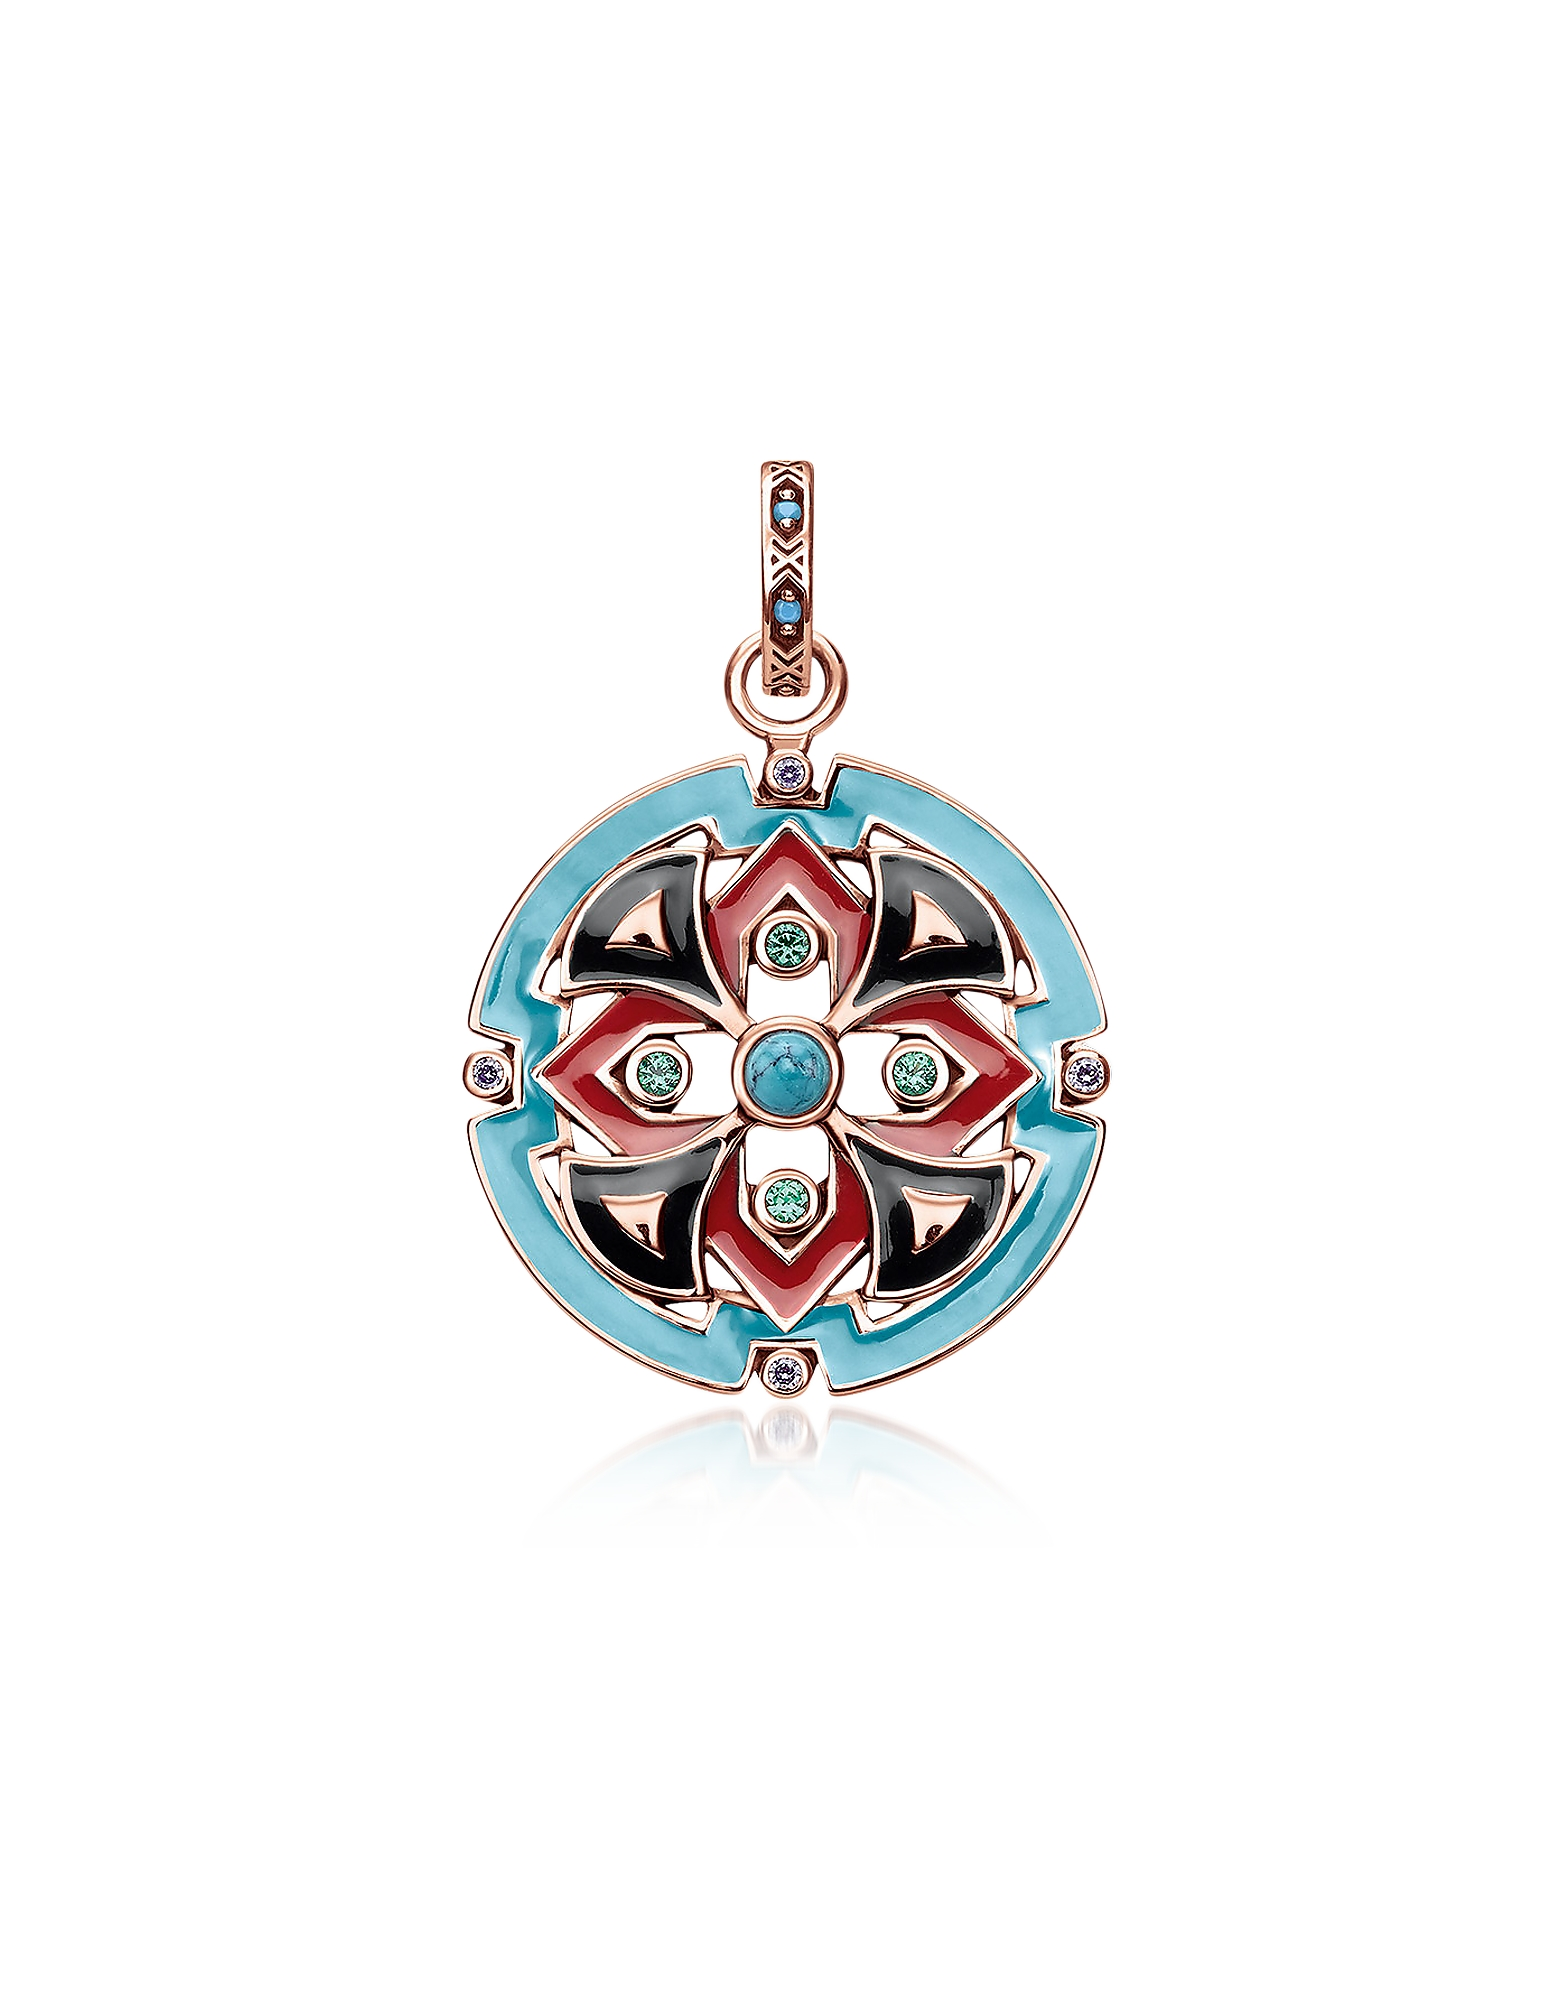 18k Rose Gold Plated Sterling Silver Round Pendant w/Glass-ceramic Stones